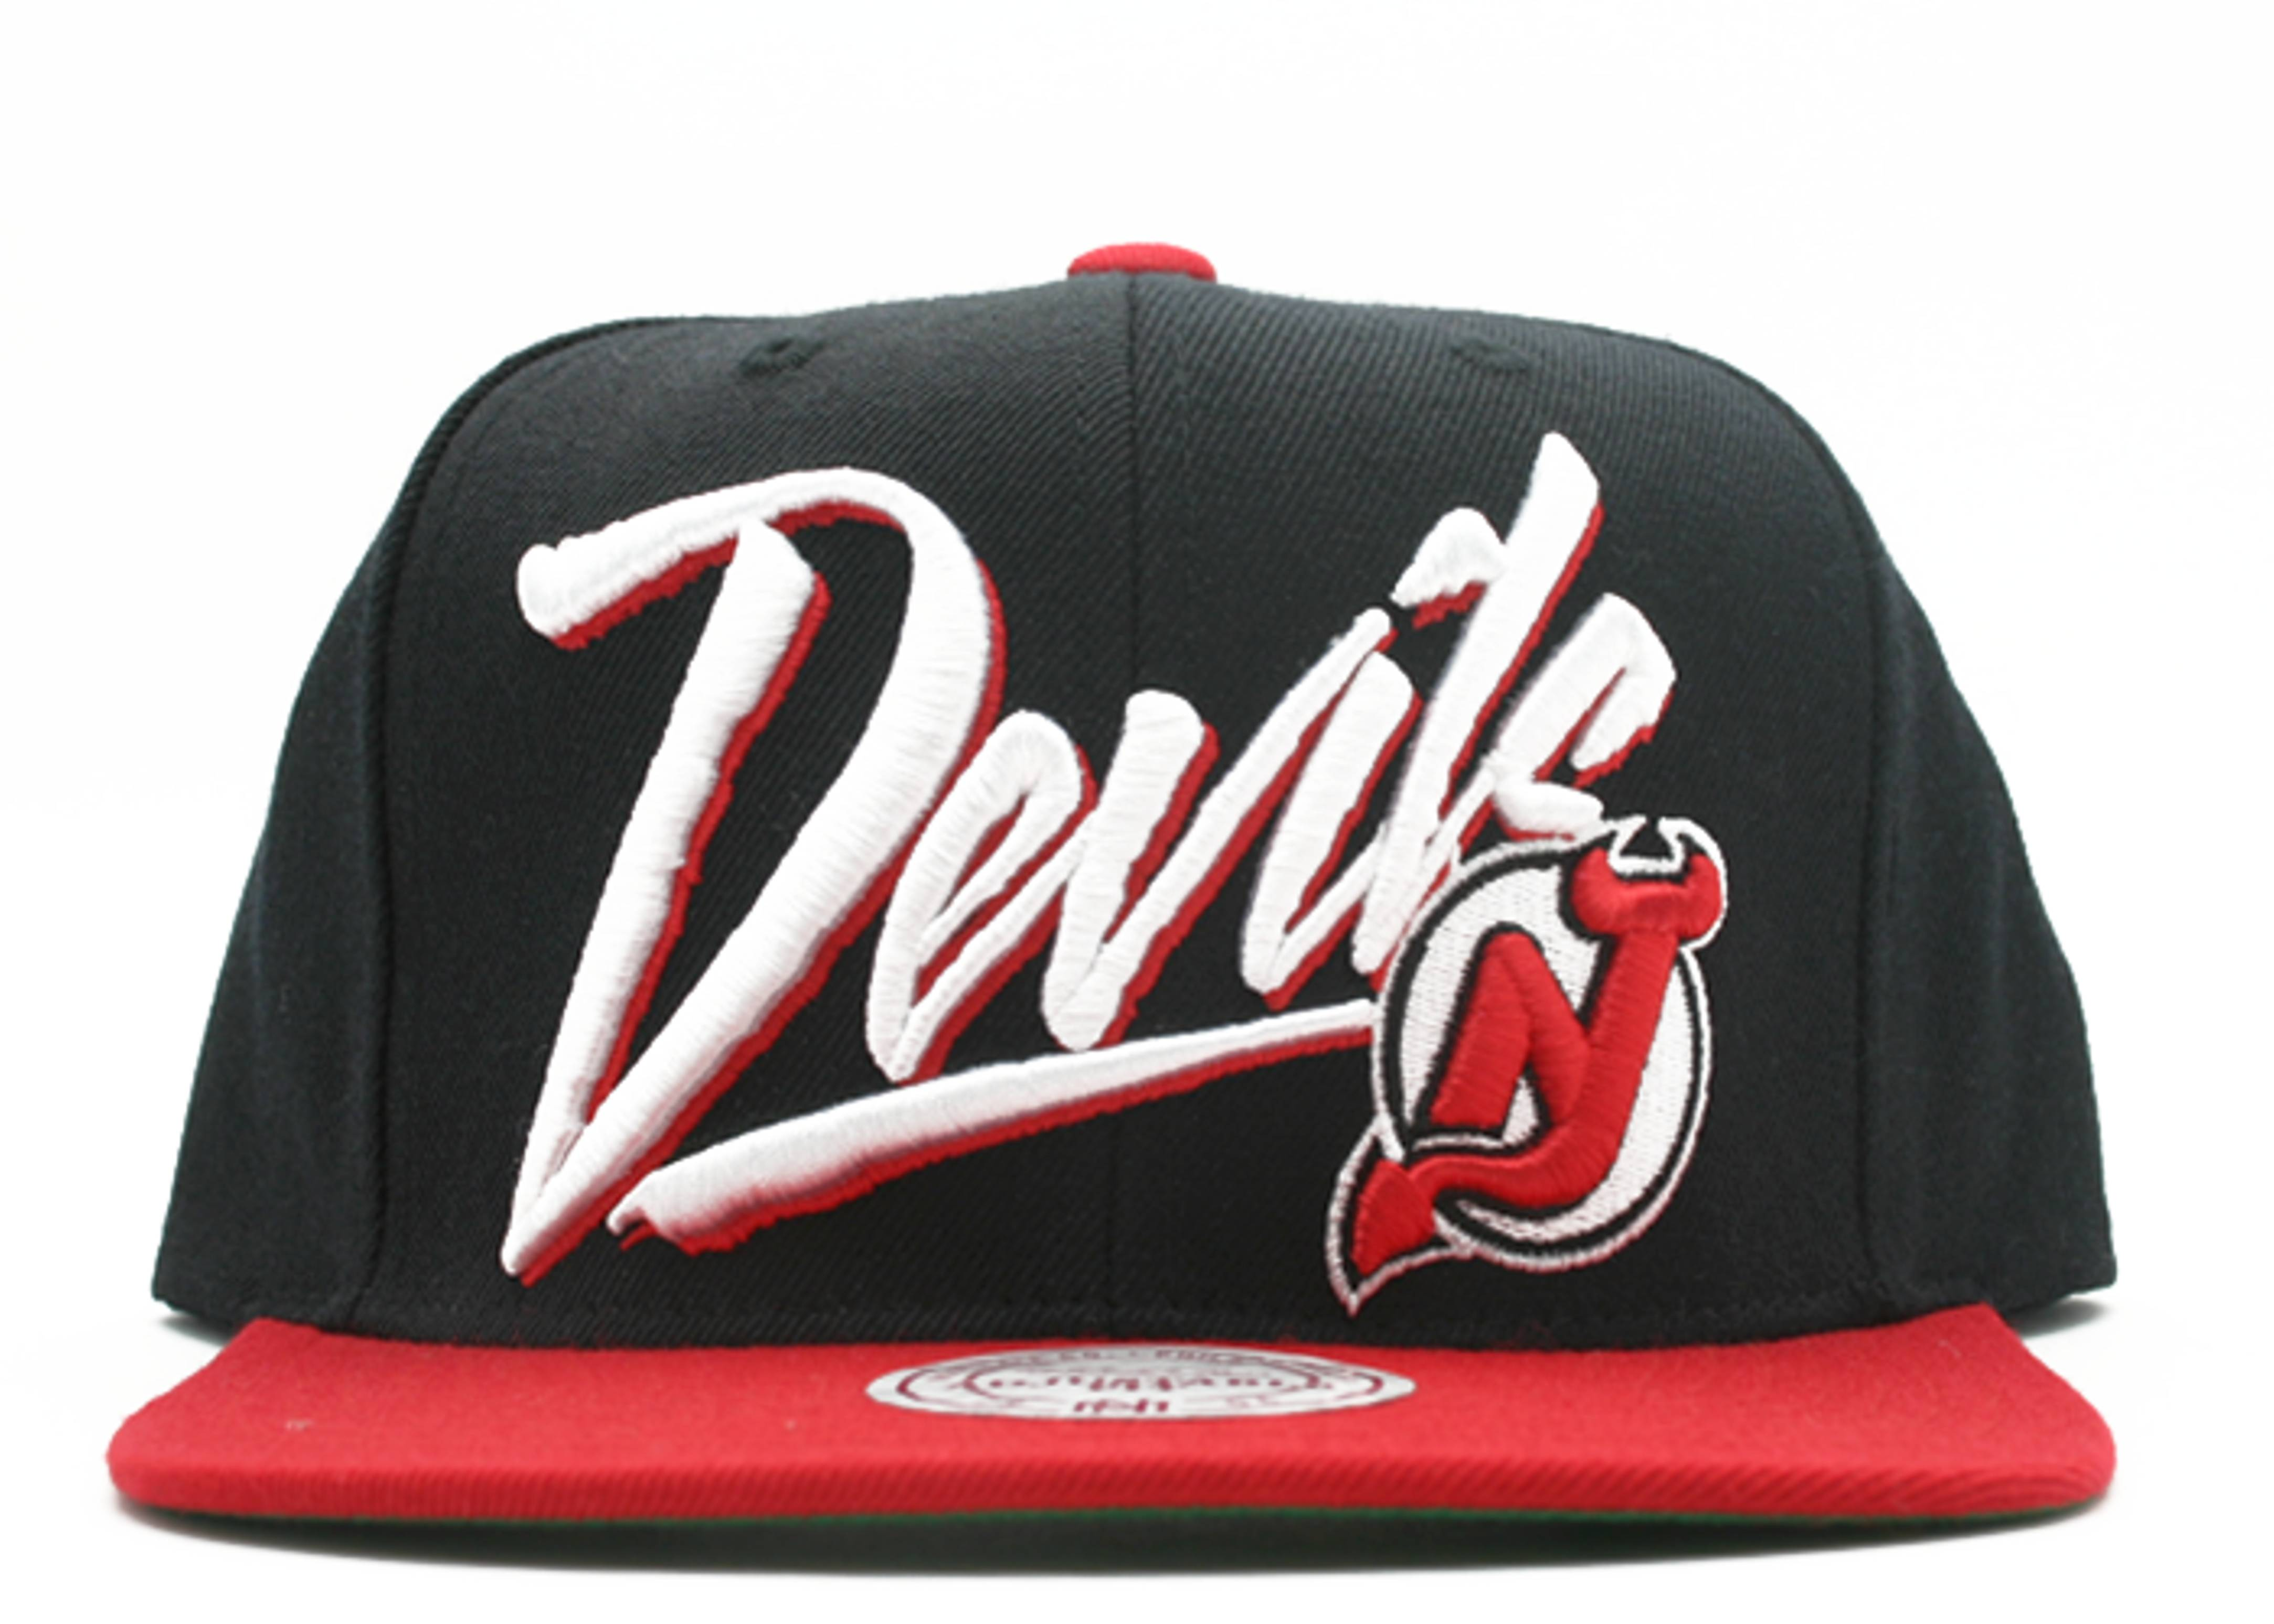 new jersey devils snap-back